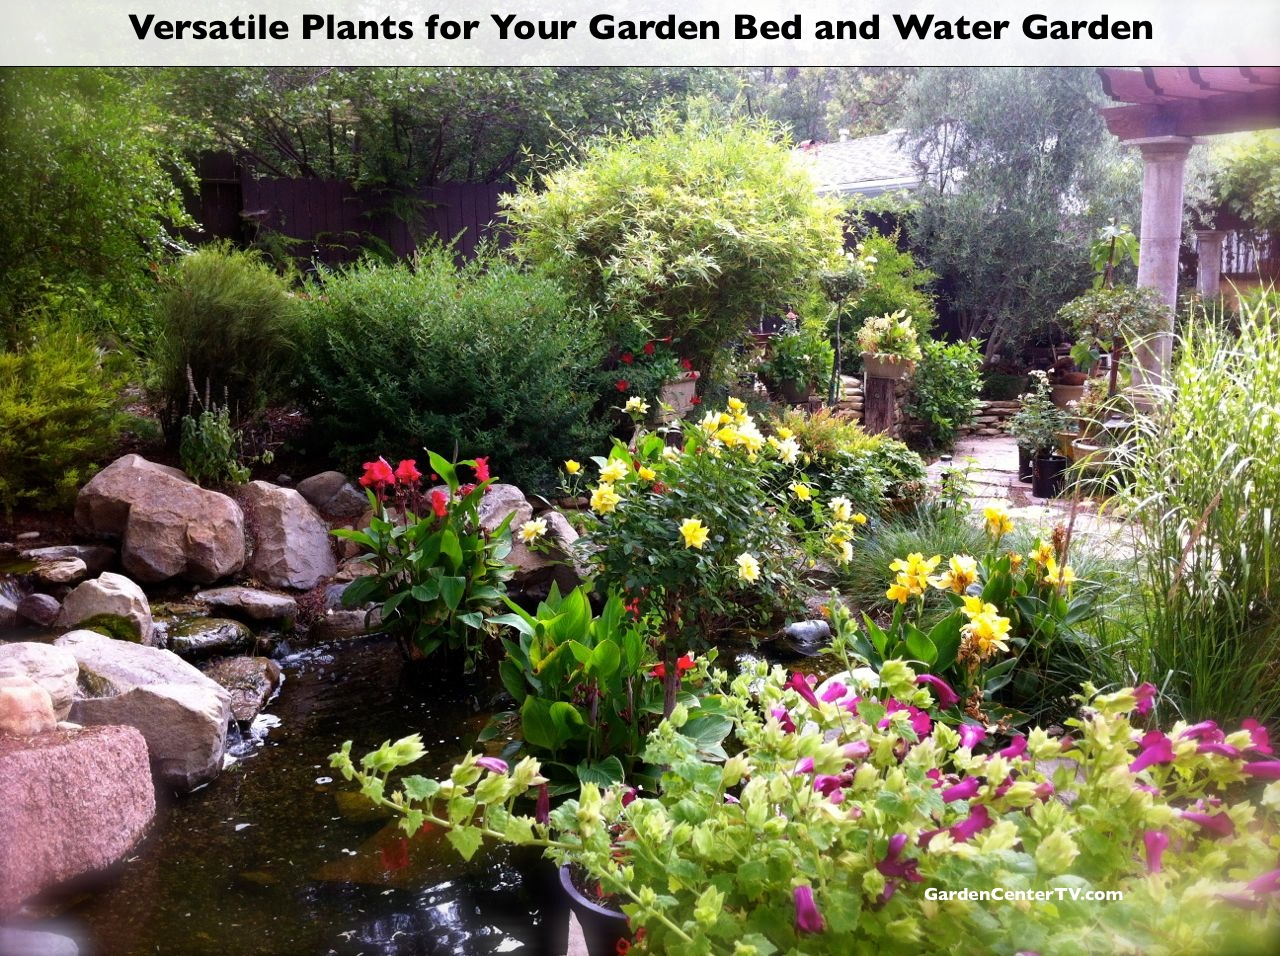 Plant Bed Versatile Plants For Your Garden Bed And Water Garden